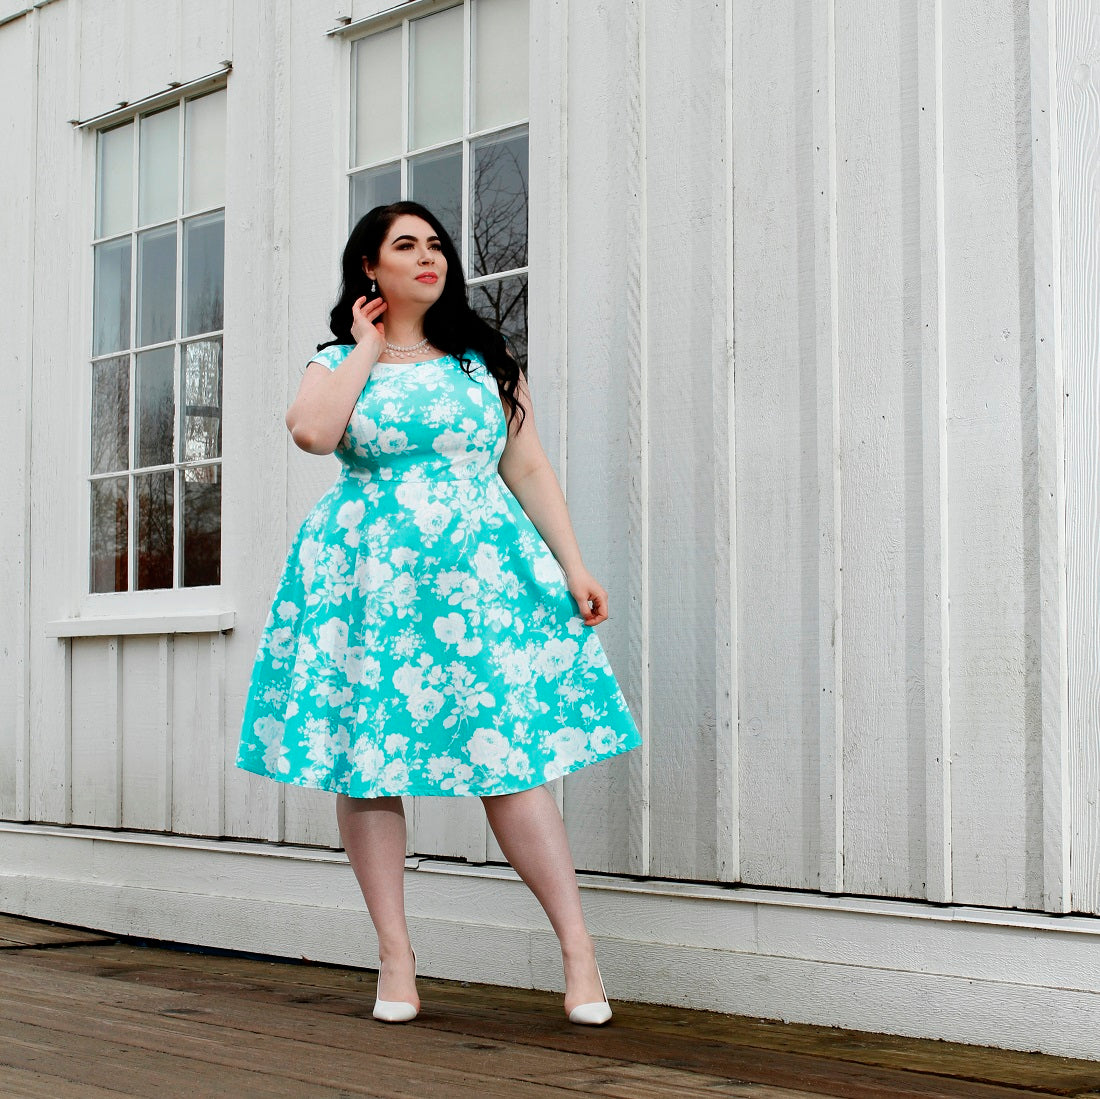 Model Veronica Belle wears the Cherry Velvet Olivia Dress in Aqua Bouquet